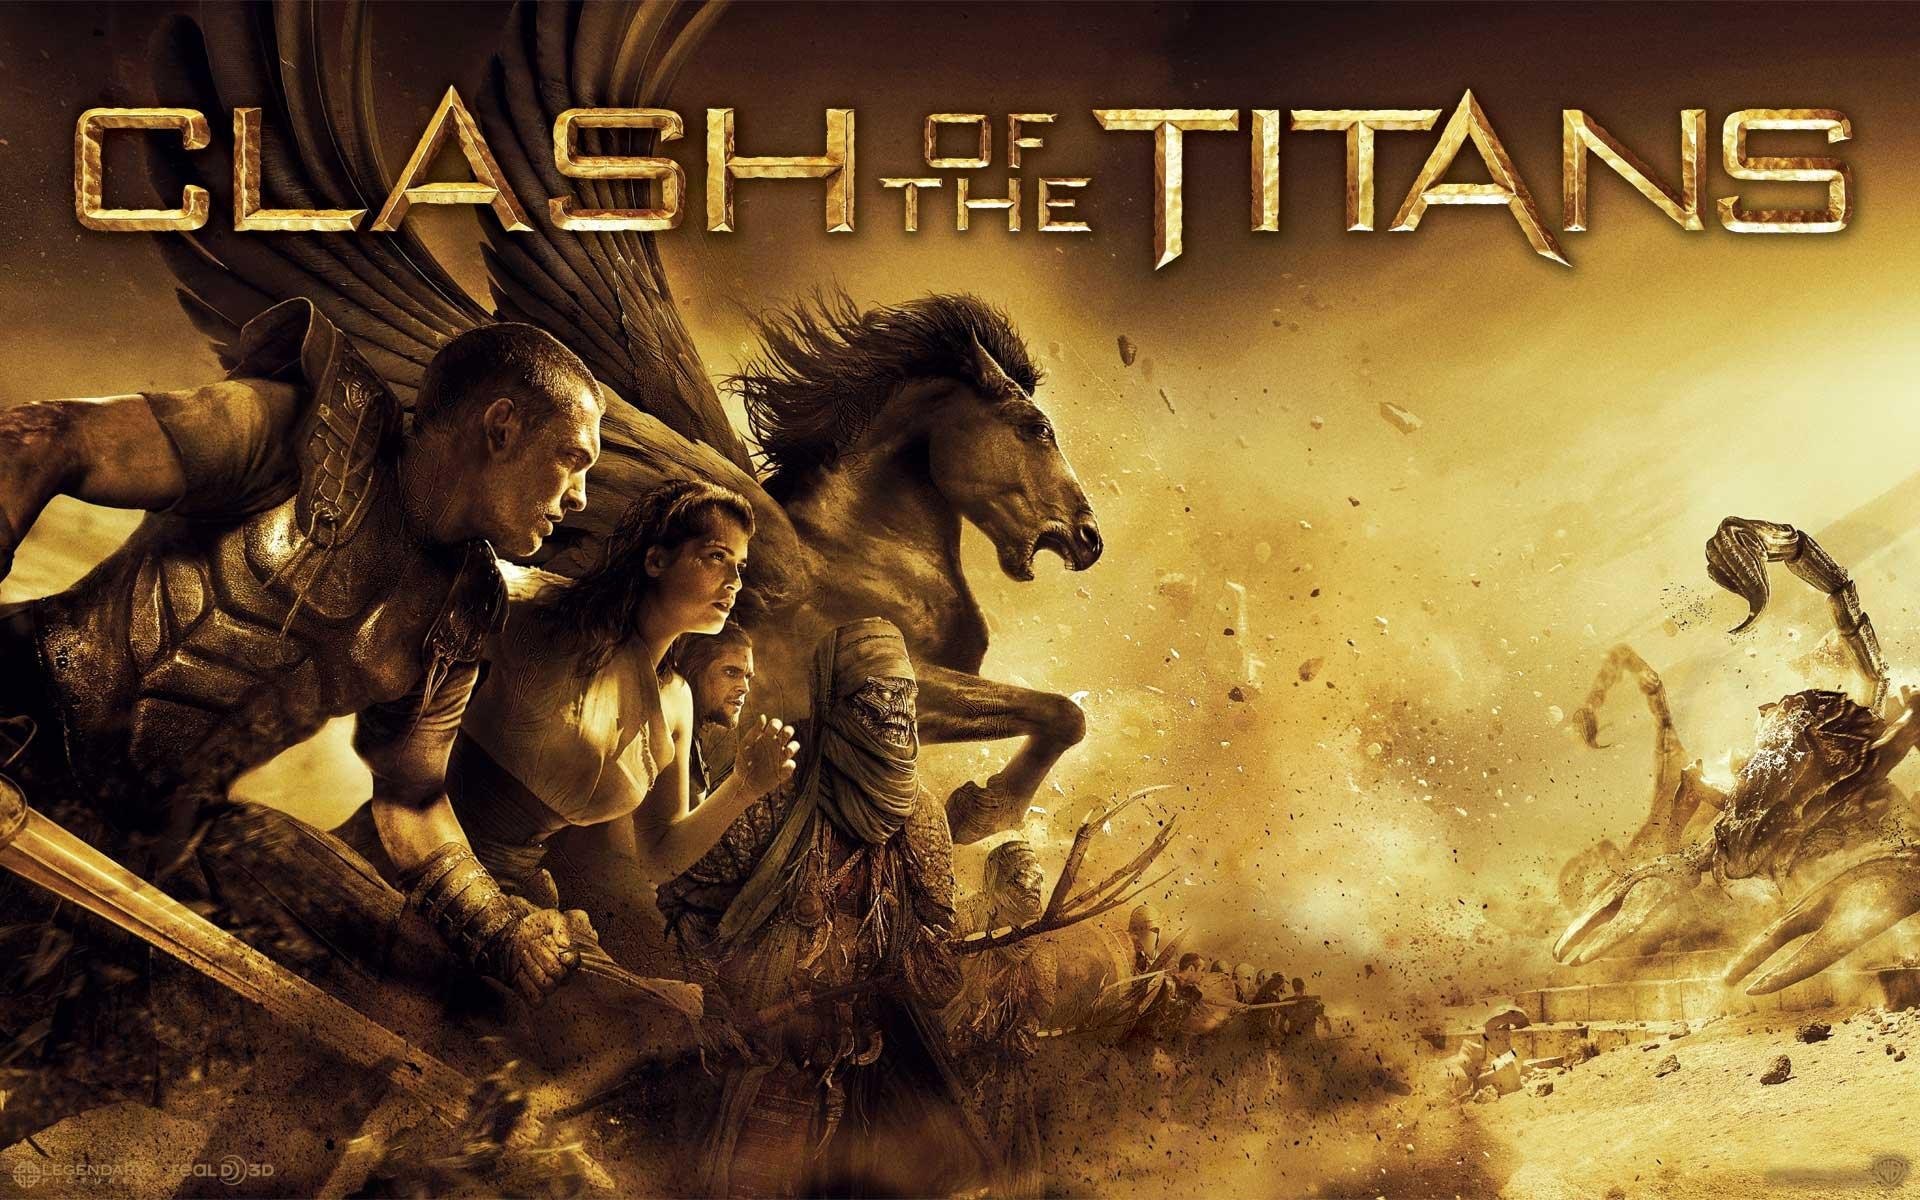 Обои Clash of the Titans. Heroes 1920x1200